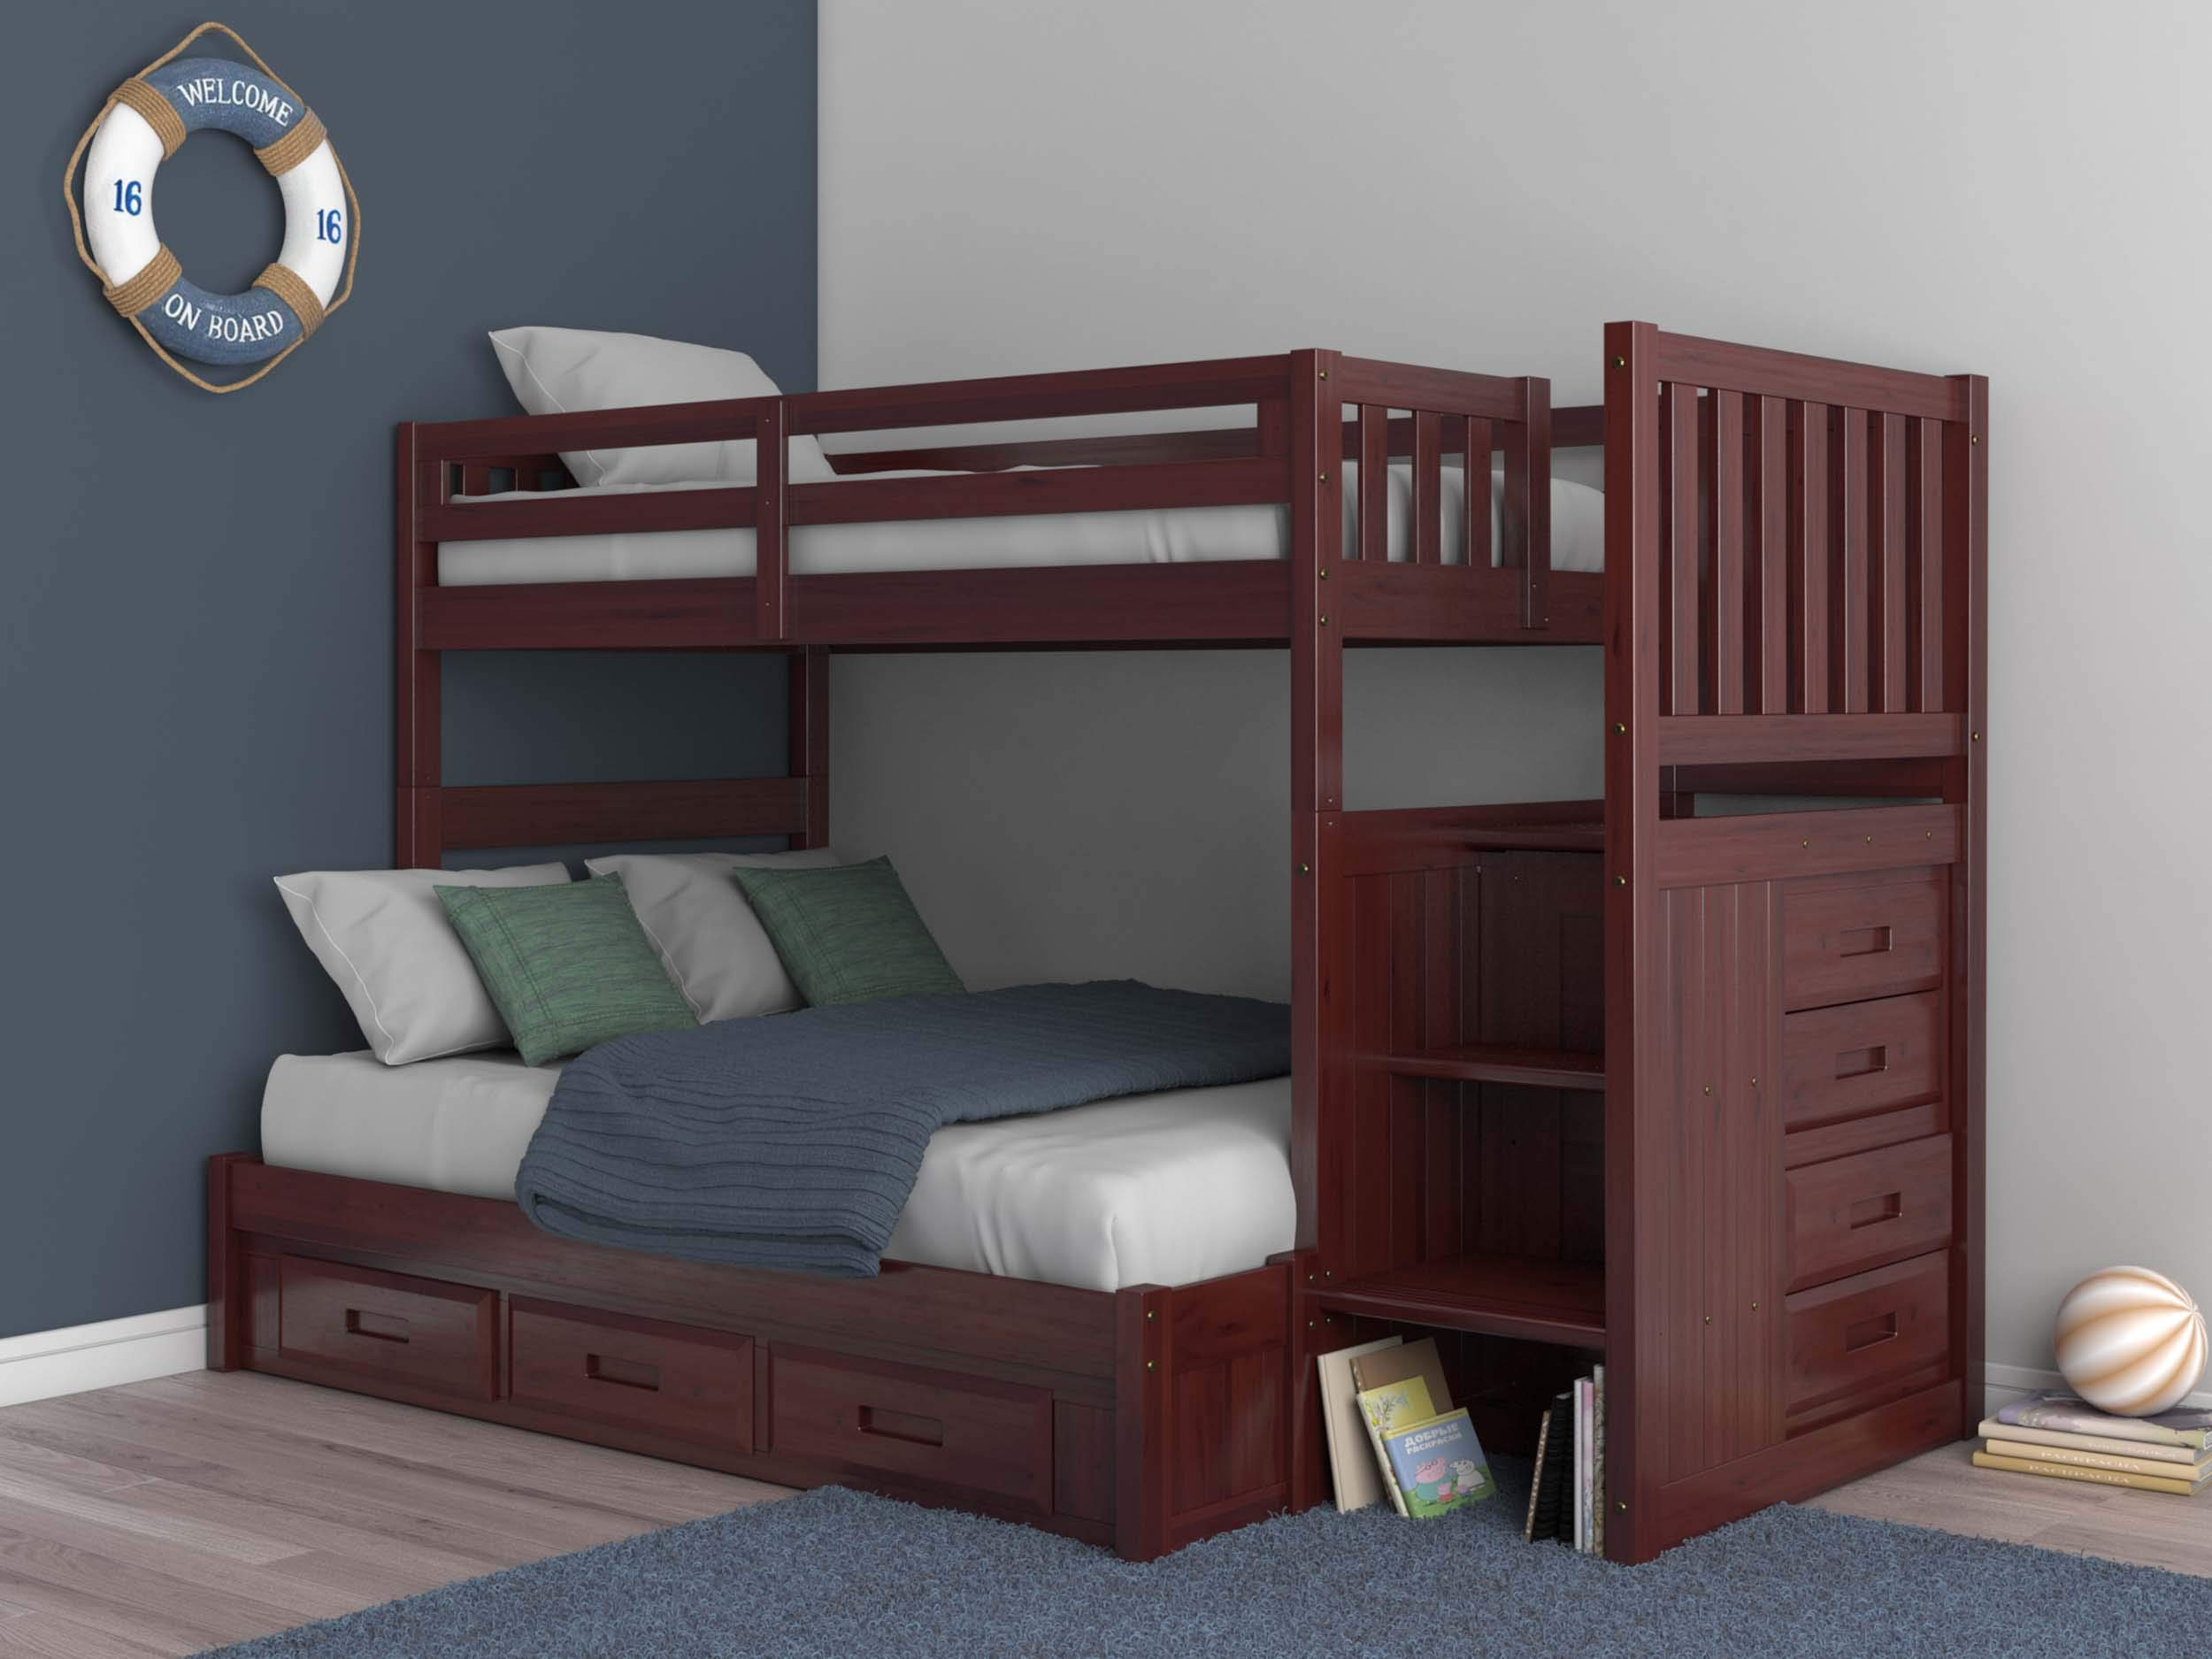 Merlot Twin Over Full Mission Staircase Bunk Bed with 3 Drawers by Discovery World Furniture